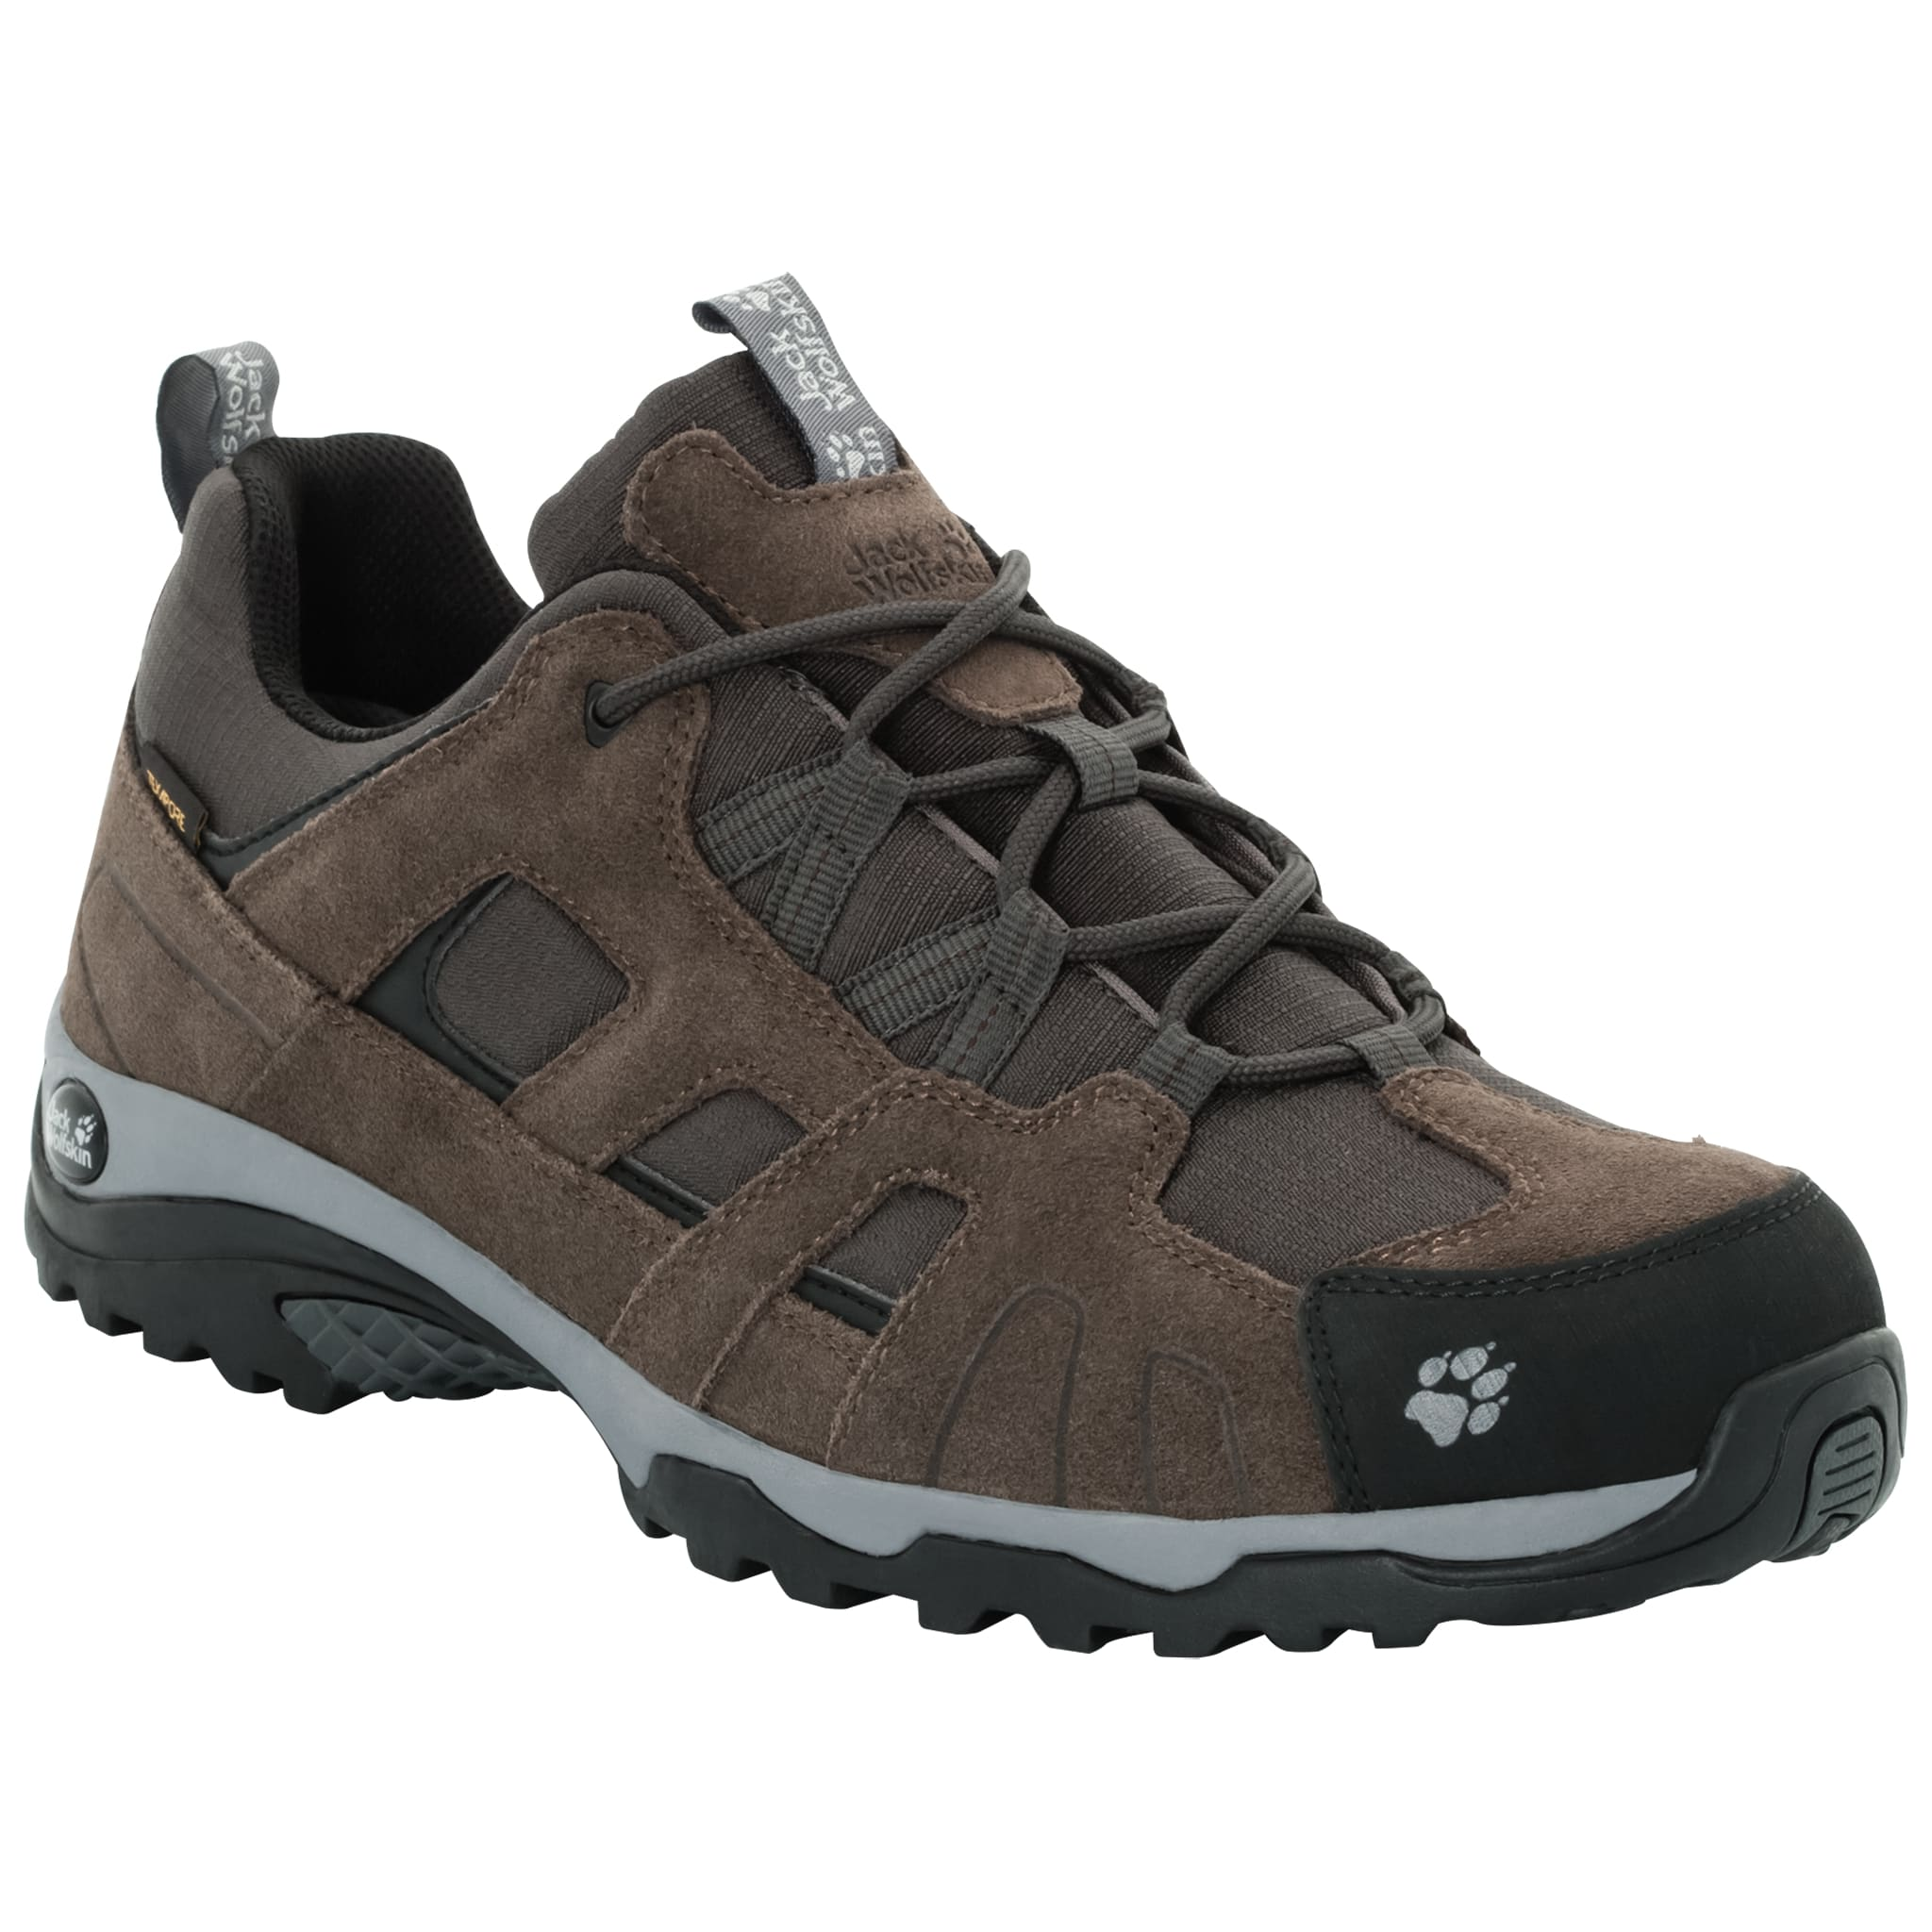 8f695e0b62 Jack Wolfskin Vojo Hike Texapore Hiking Boots - Men's, Up to 41% Off with  Free S&H — CampSaver